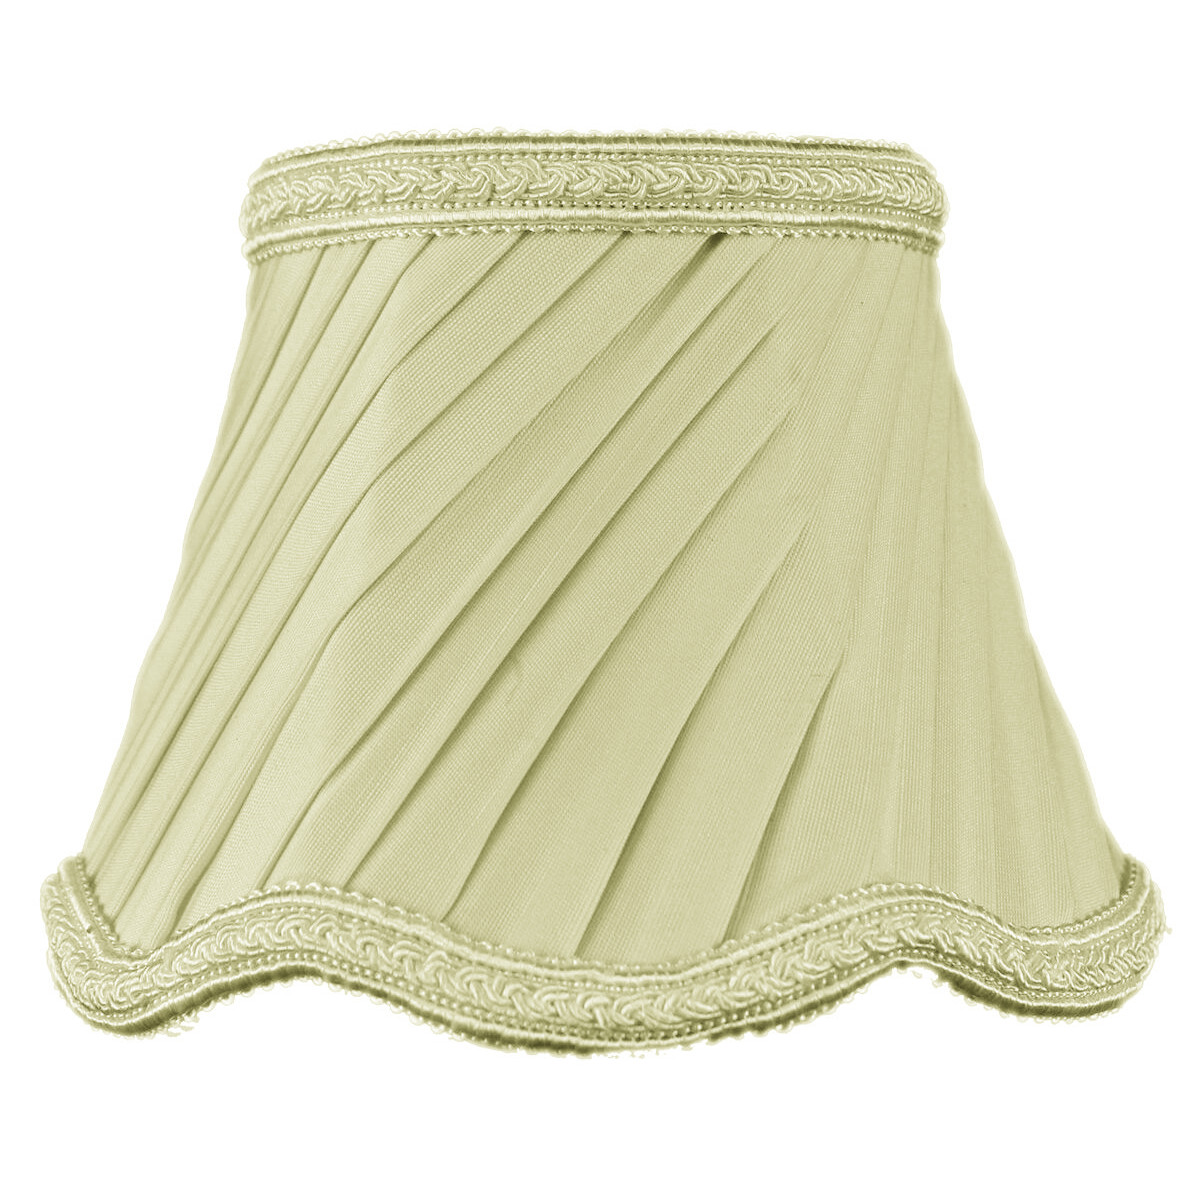 3x5x4 Crisp Linen Pleated Twist Clip-on Candelabra Lampshade by Home Concept